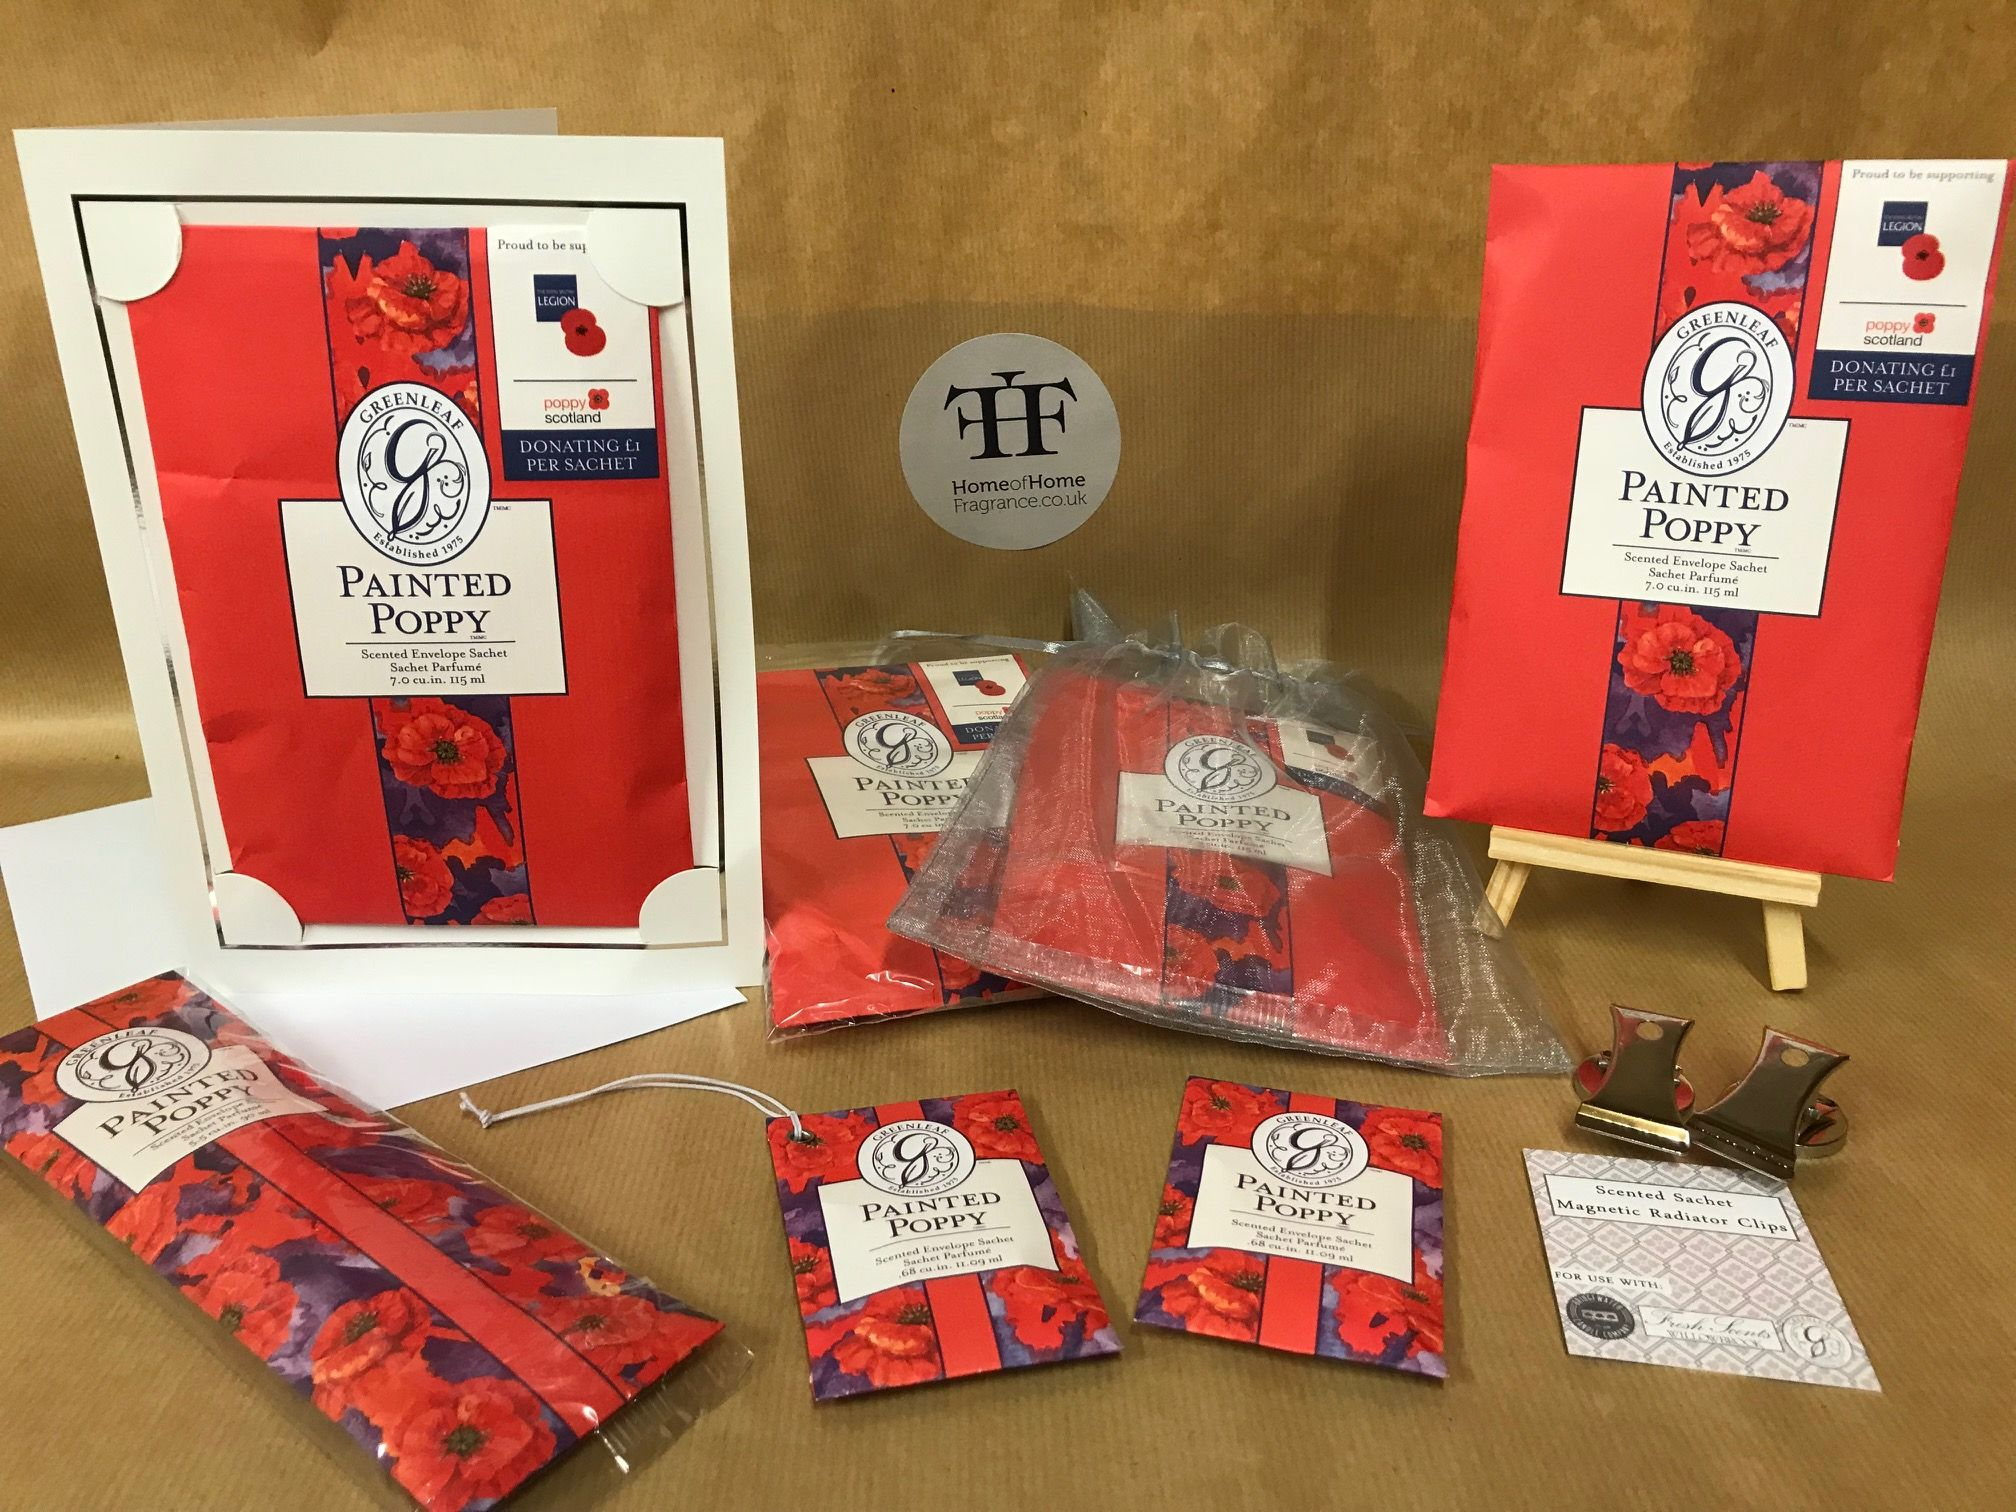 - Painted Poppy Gift Box - Supporting The Royal British Legion